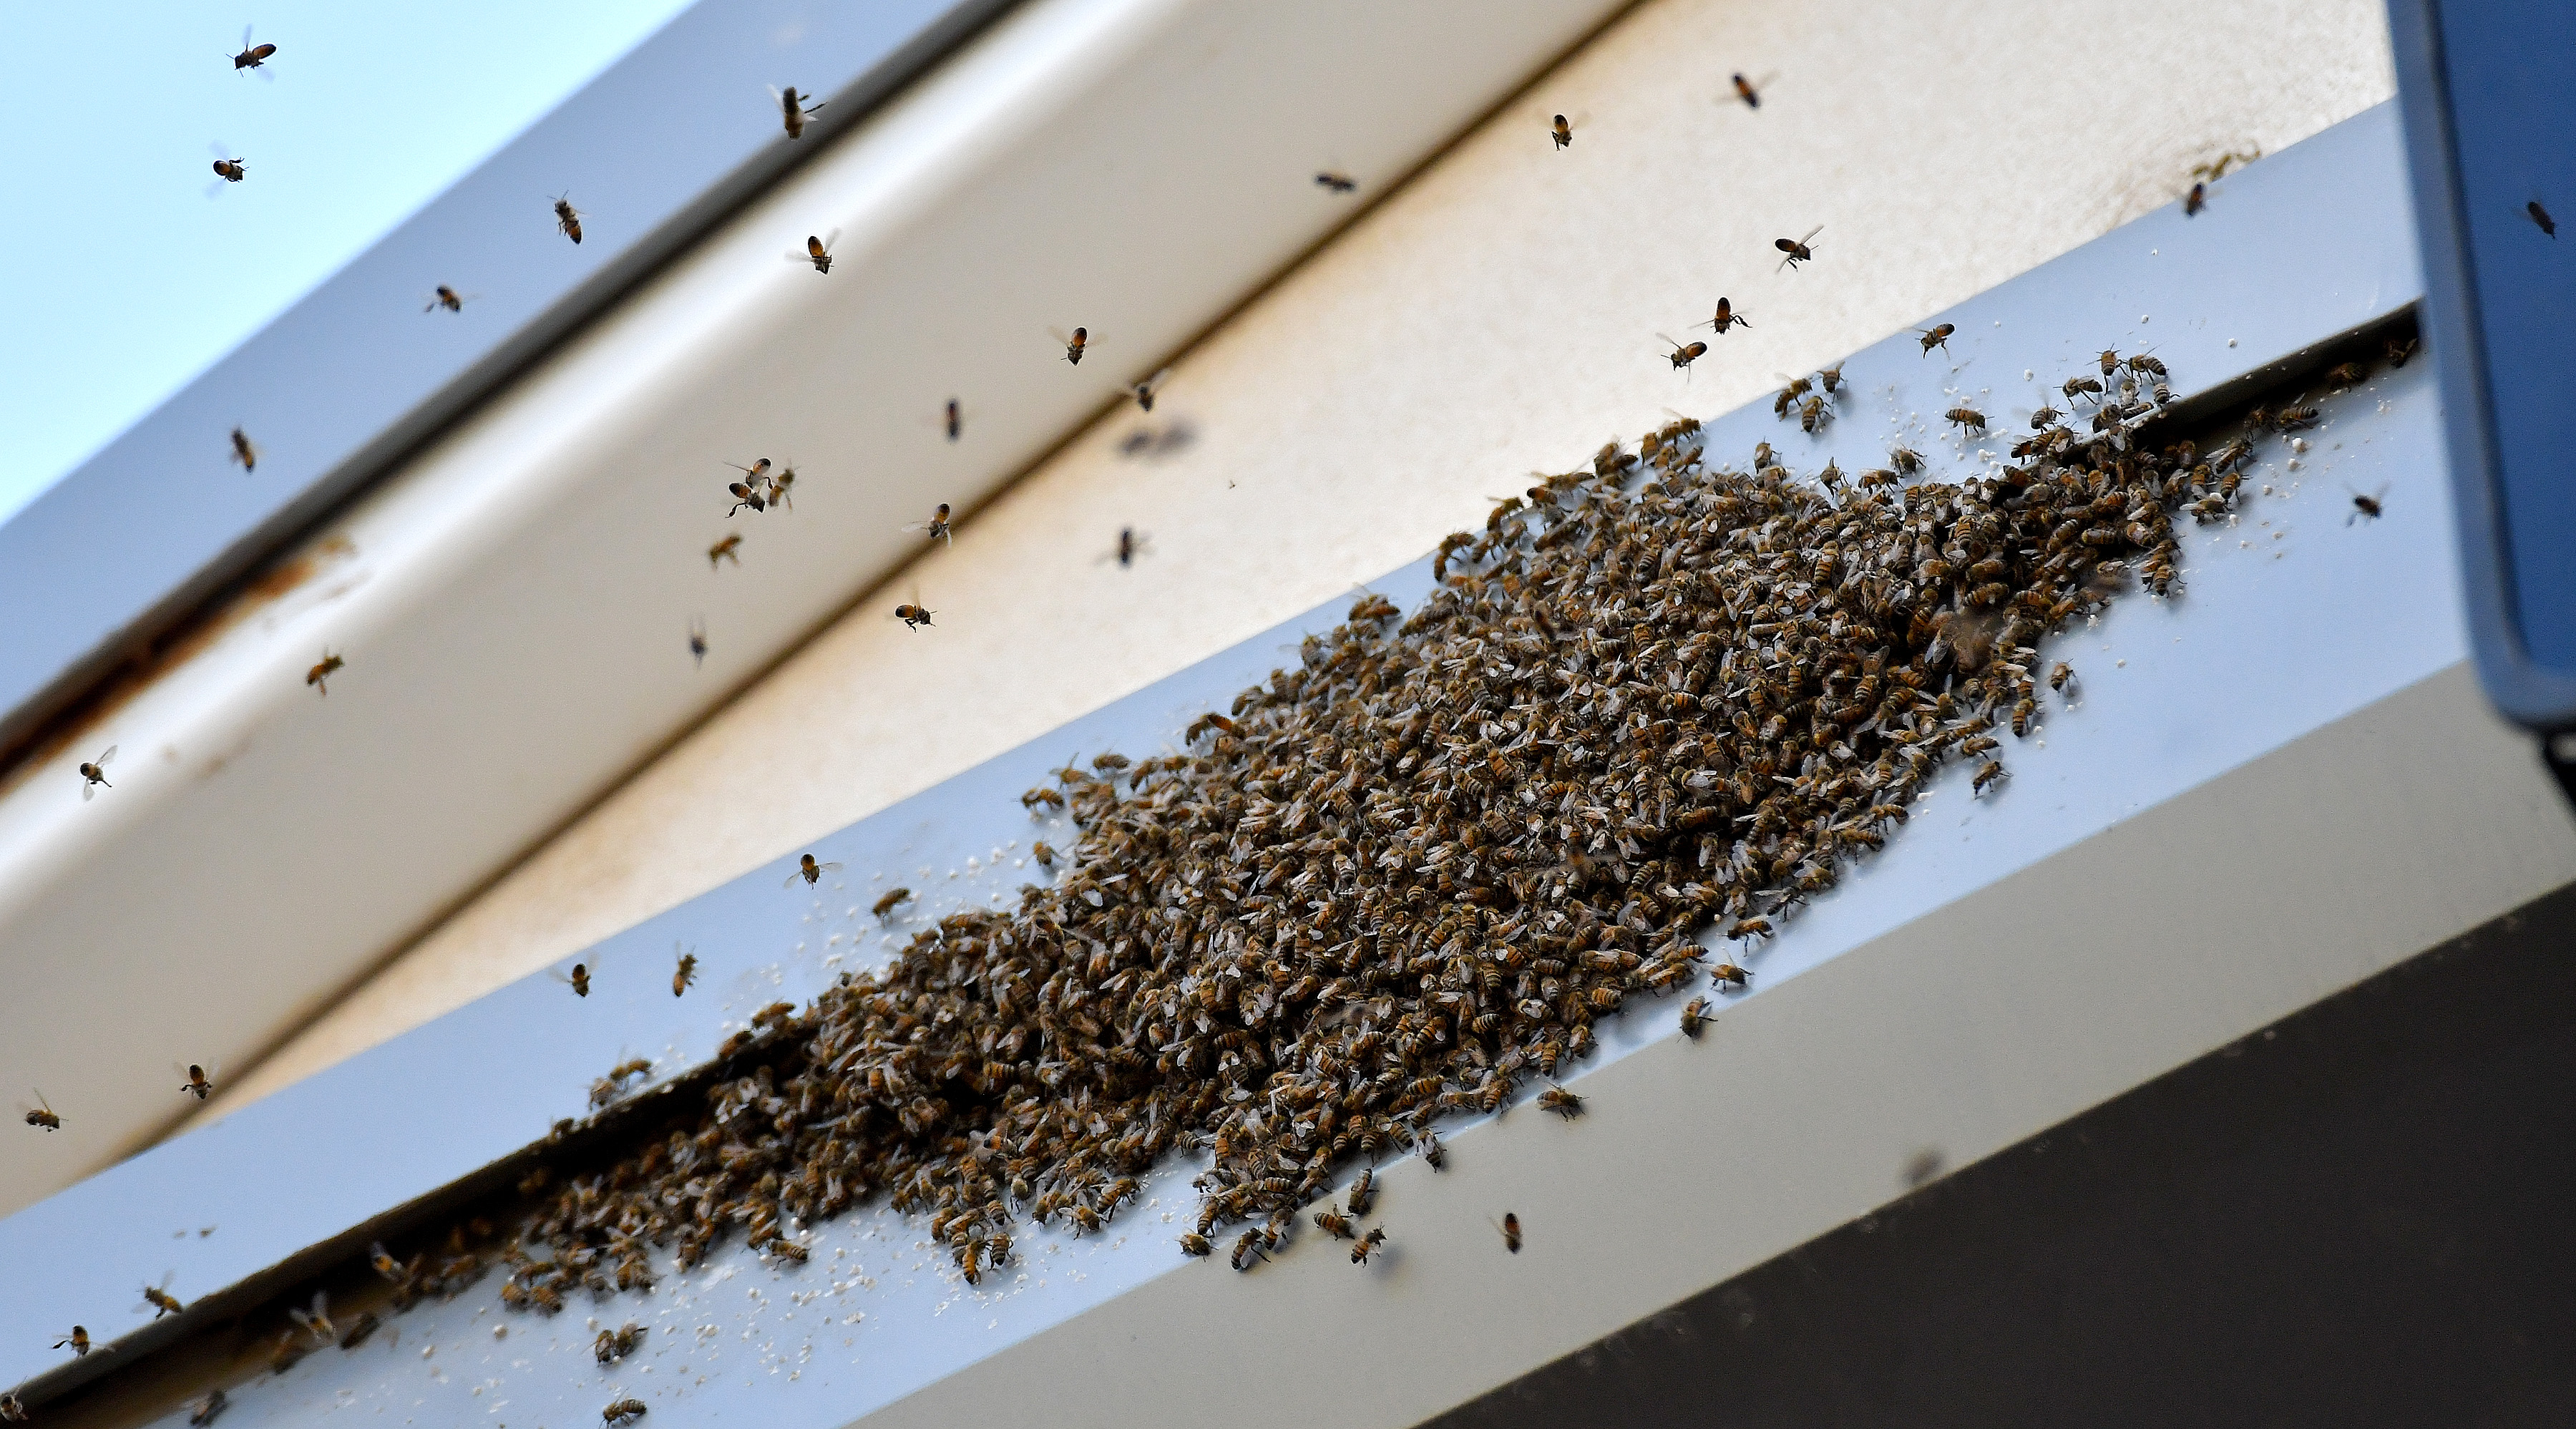 A swarm of bees gathers above the press box during during a spring training game between the Milwaukee Brewers and Kansas City Royals in Surprise, Ariz., on Saturday, March 25, 2017. (John Sleezer/Kansas City Star/TNS via Getty Images)